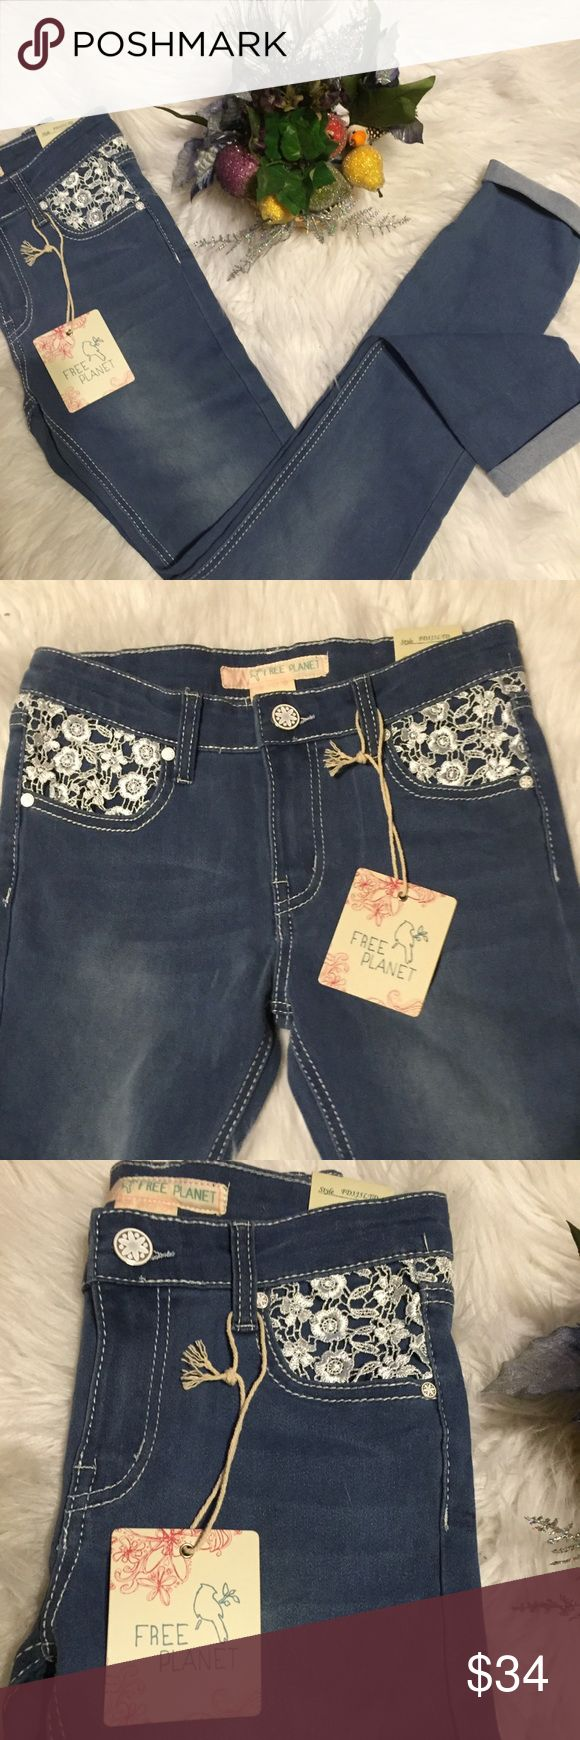 Free Planet lace embellished jeans Adorable jeggins with flower lace embellishments on front and back. These are new with tags from non smoking home Free Planet Bottoms Jeans